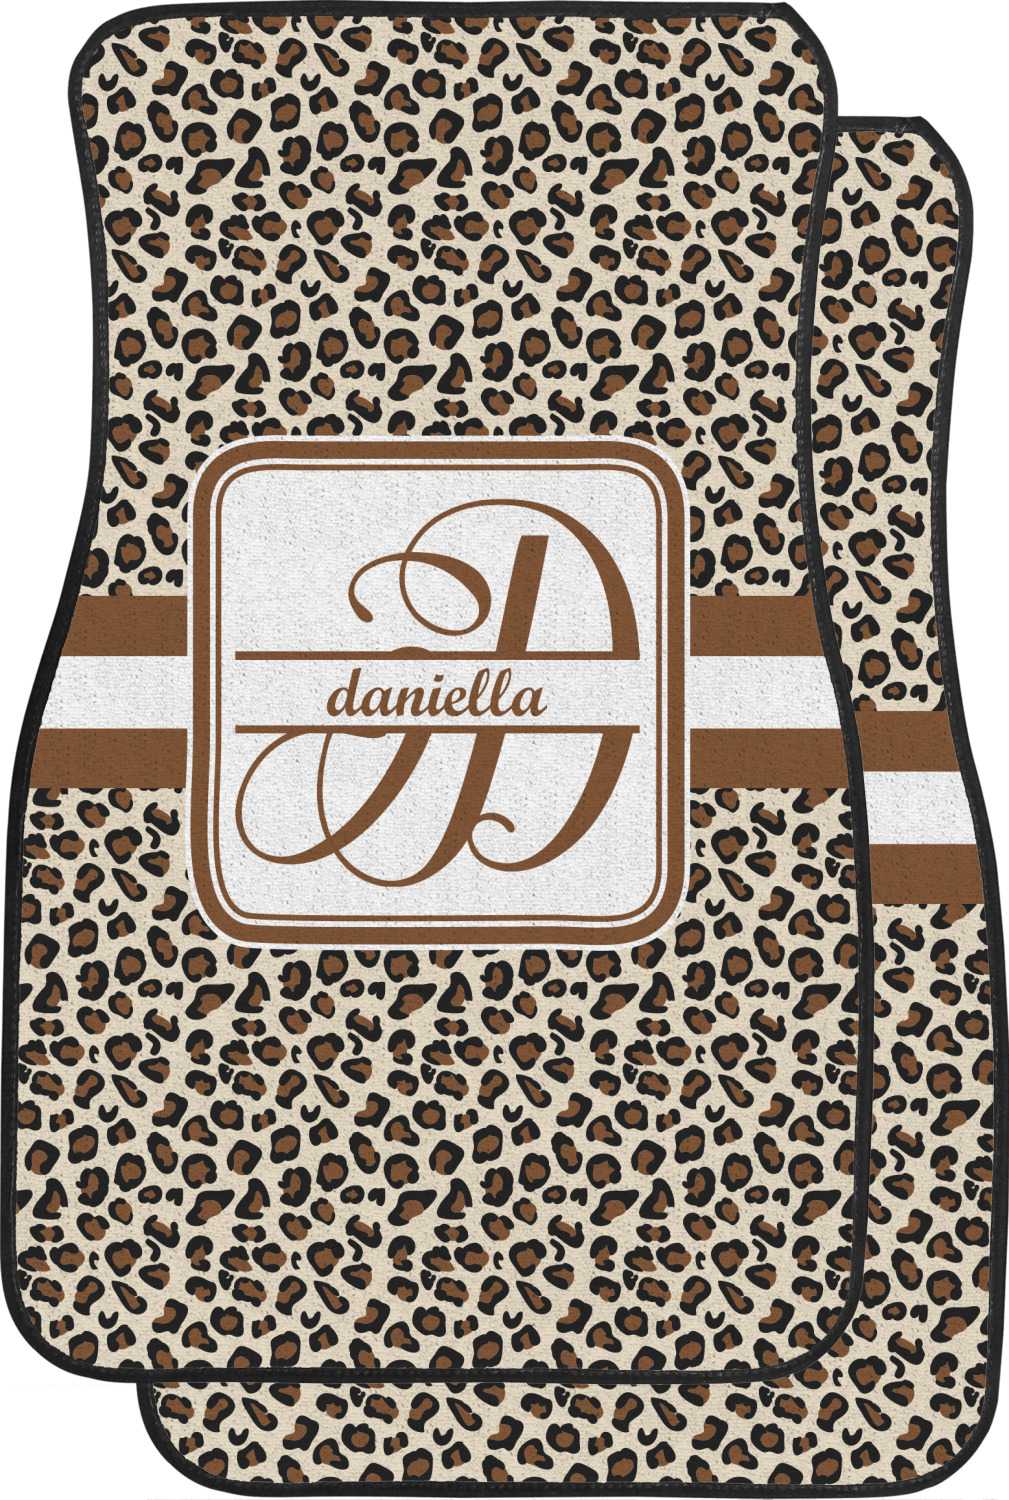 Leopard Print Car Floor Mats Front Seat Personalized